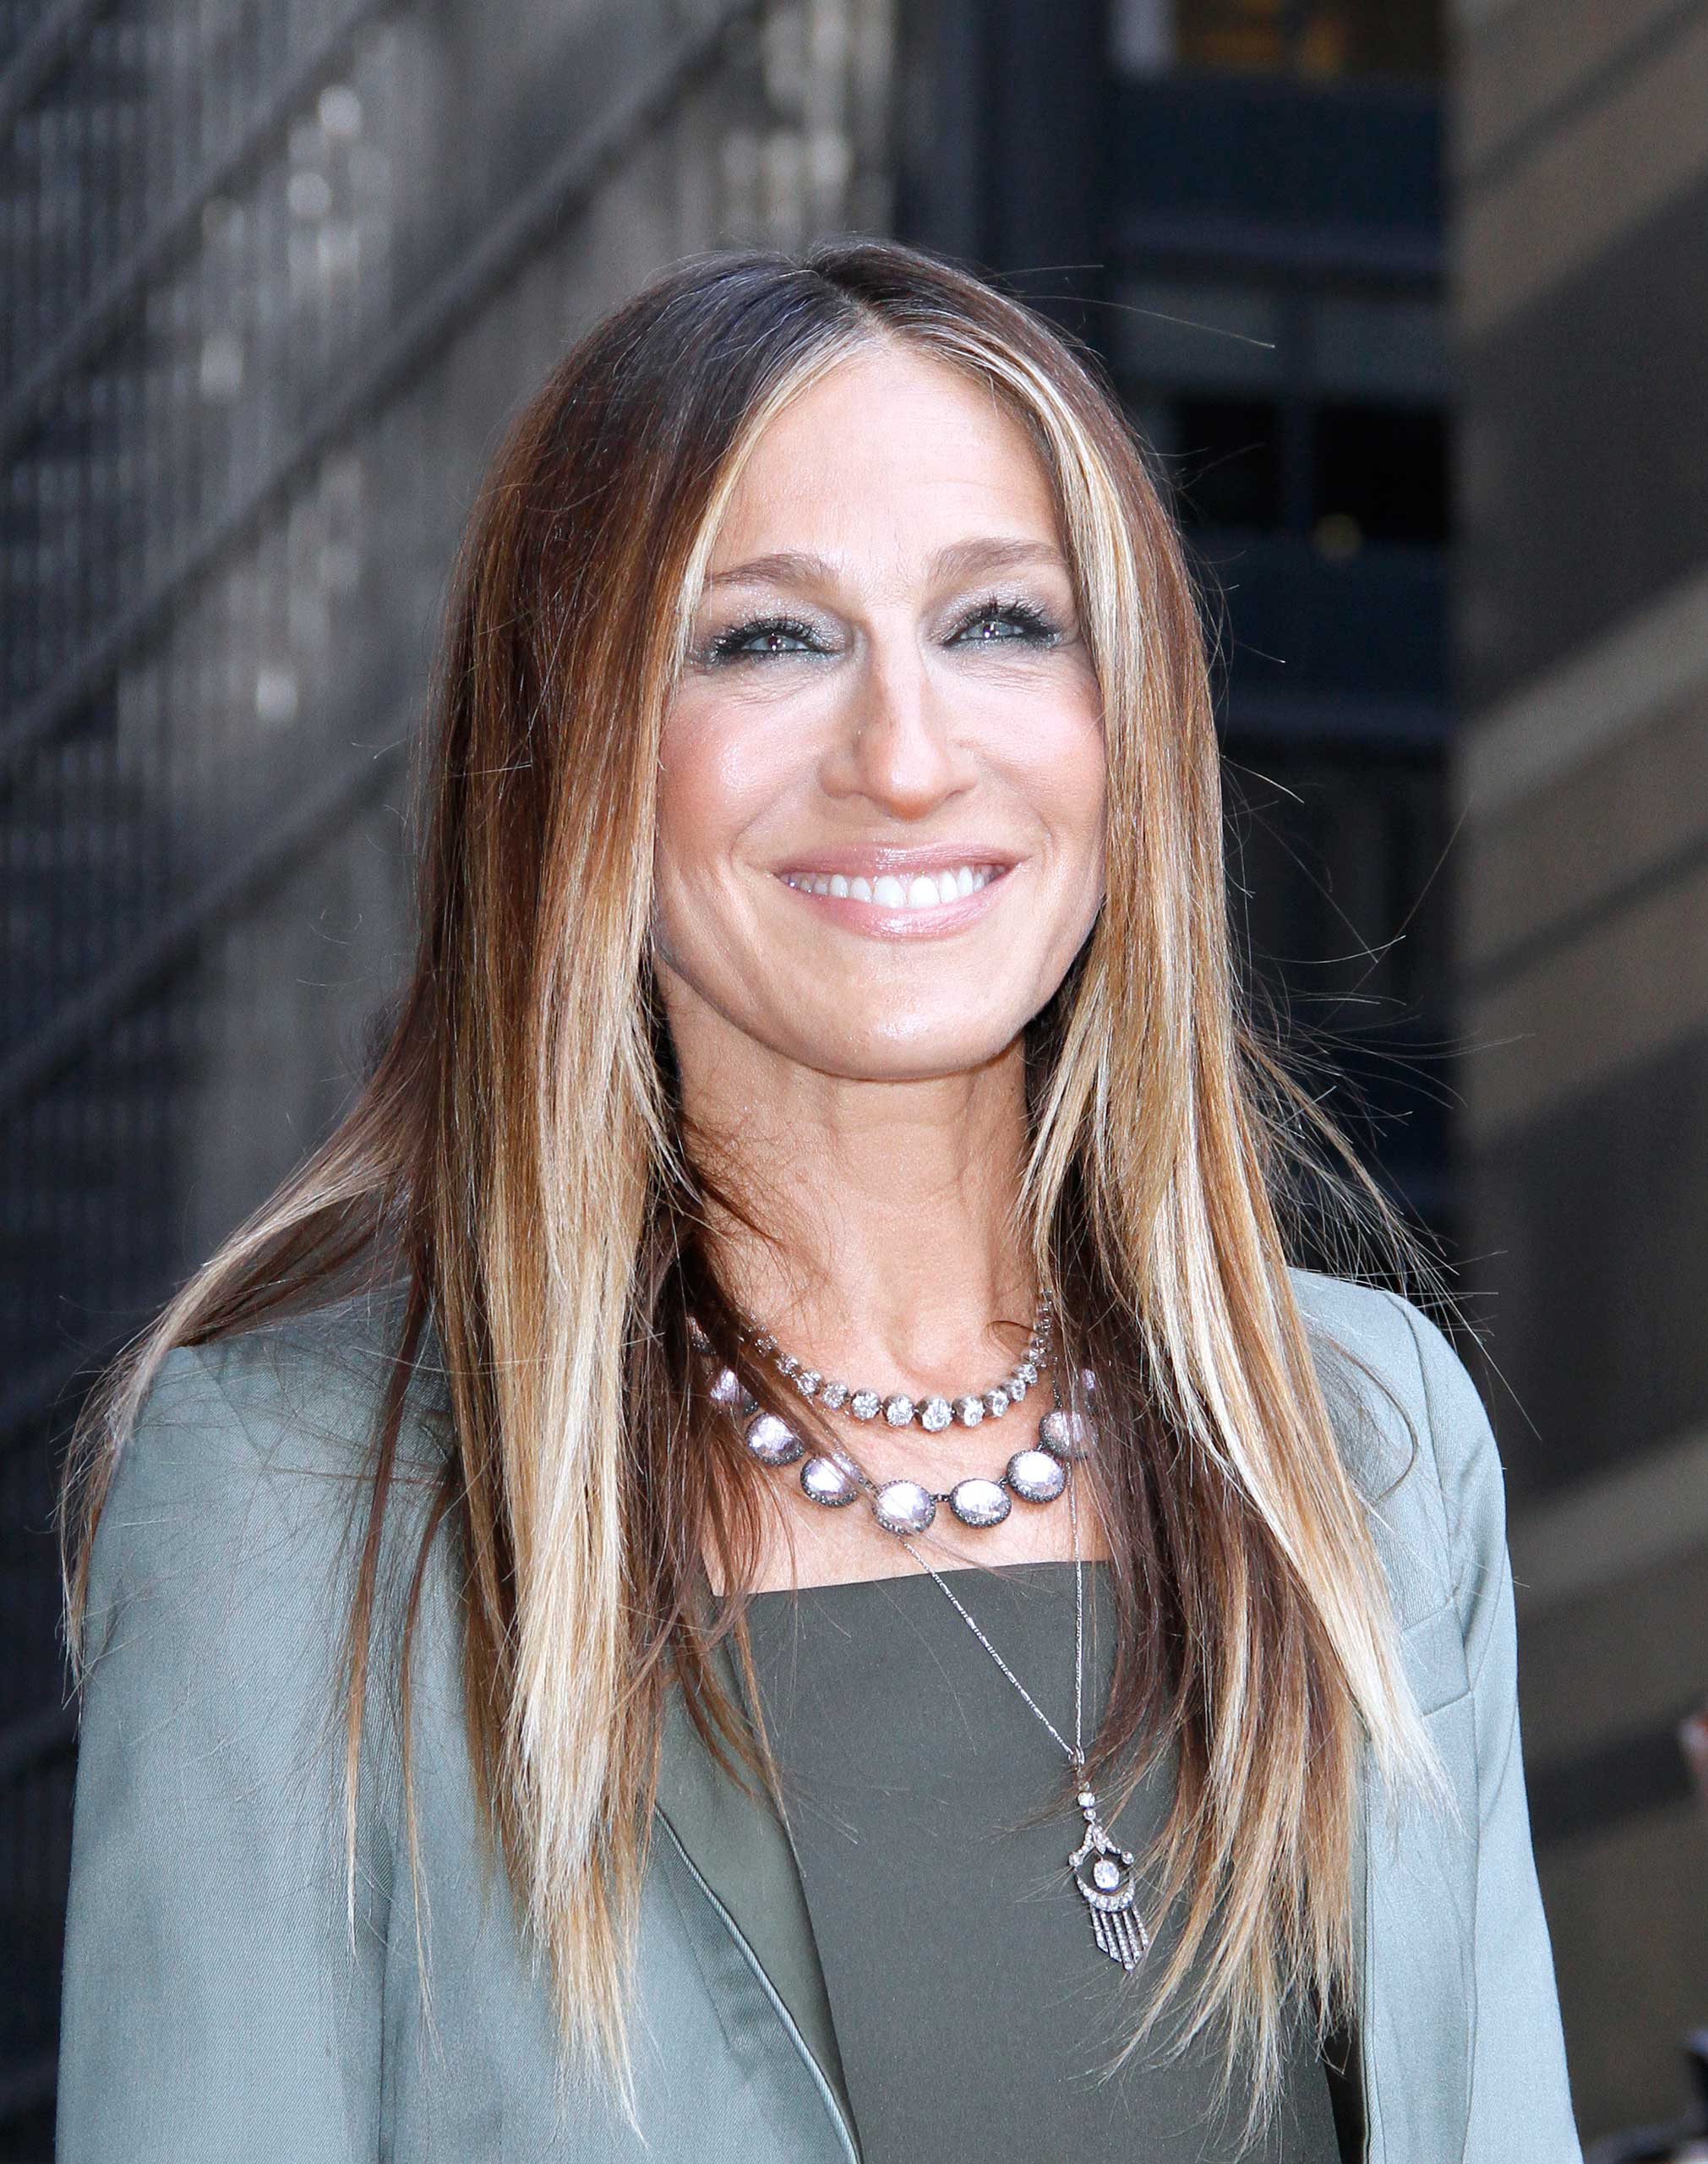 Sarah Jessica Parker leaves the Late Show With David Letterman at Ed Sullivan Theater in New York City on April 13, 2015